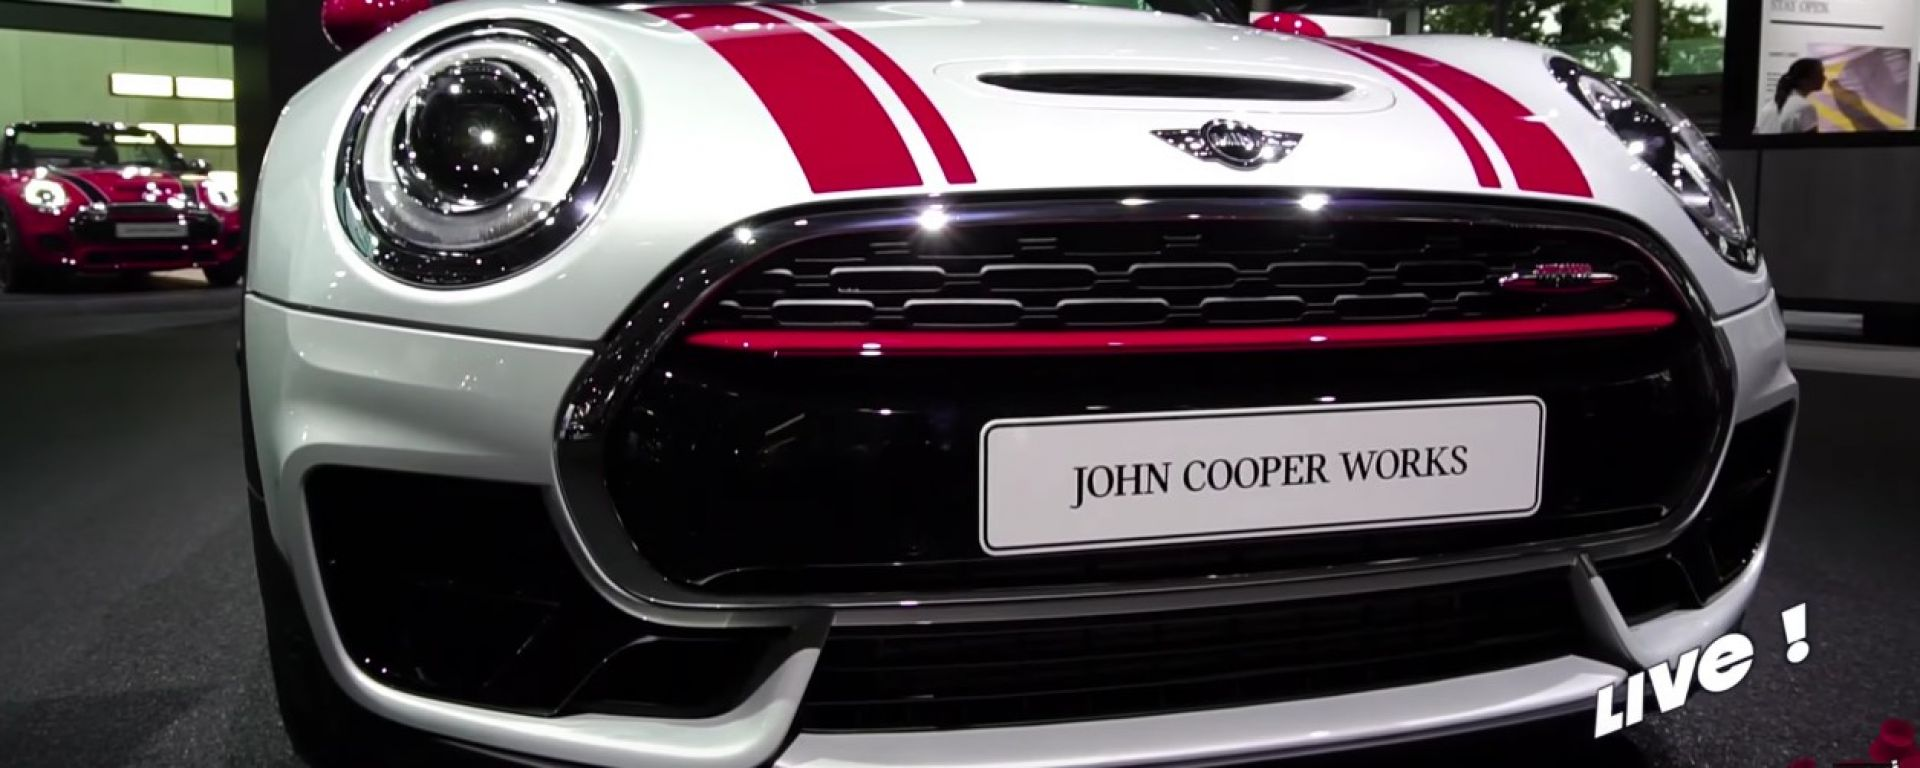 Mini Clubman John Cooper Works, Salone di Parigi 2016